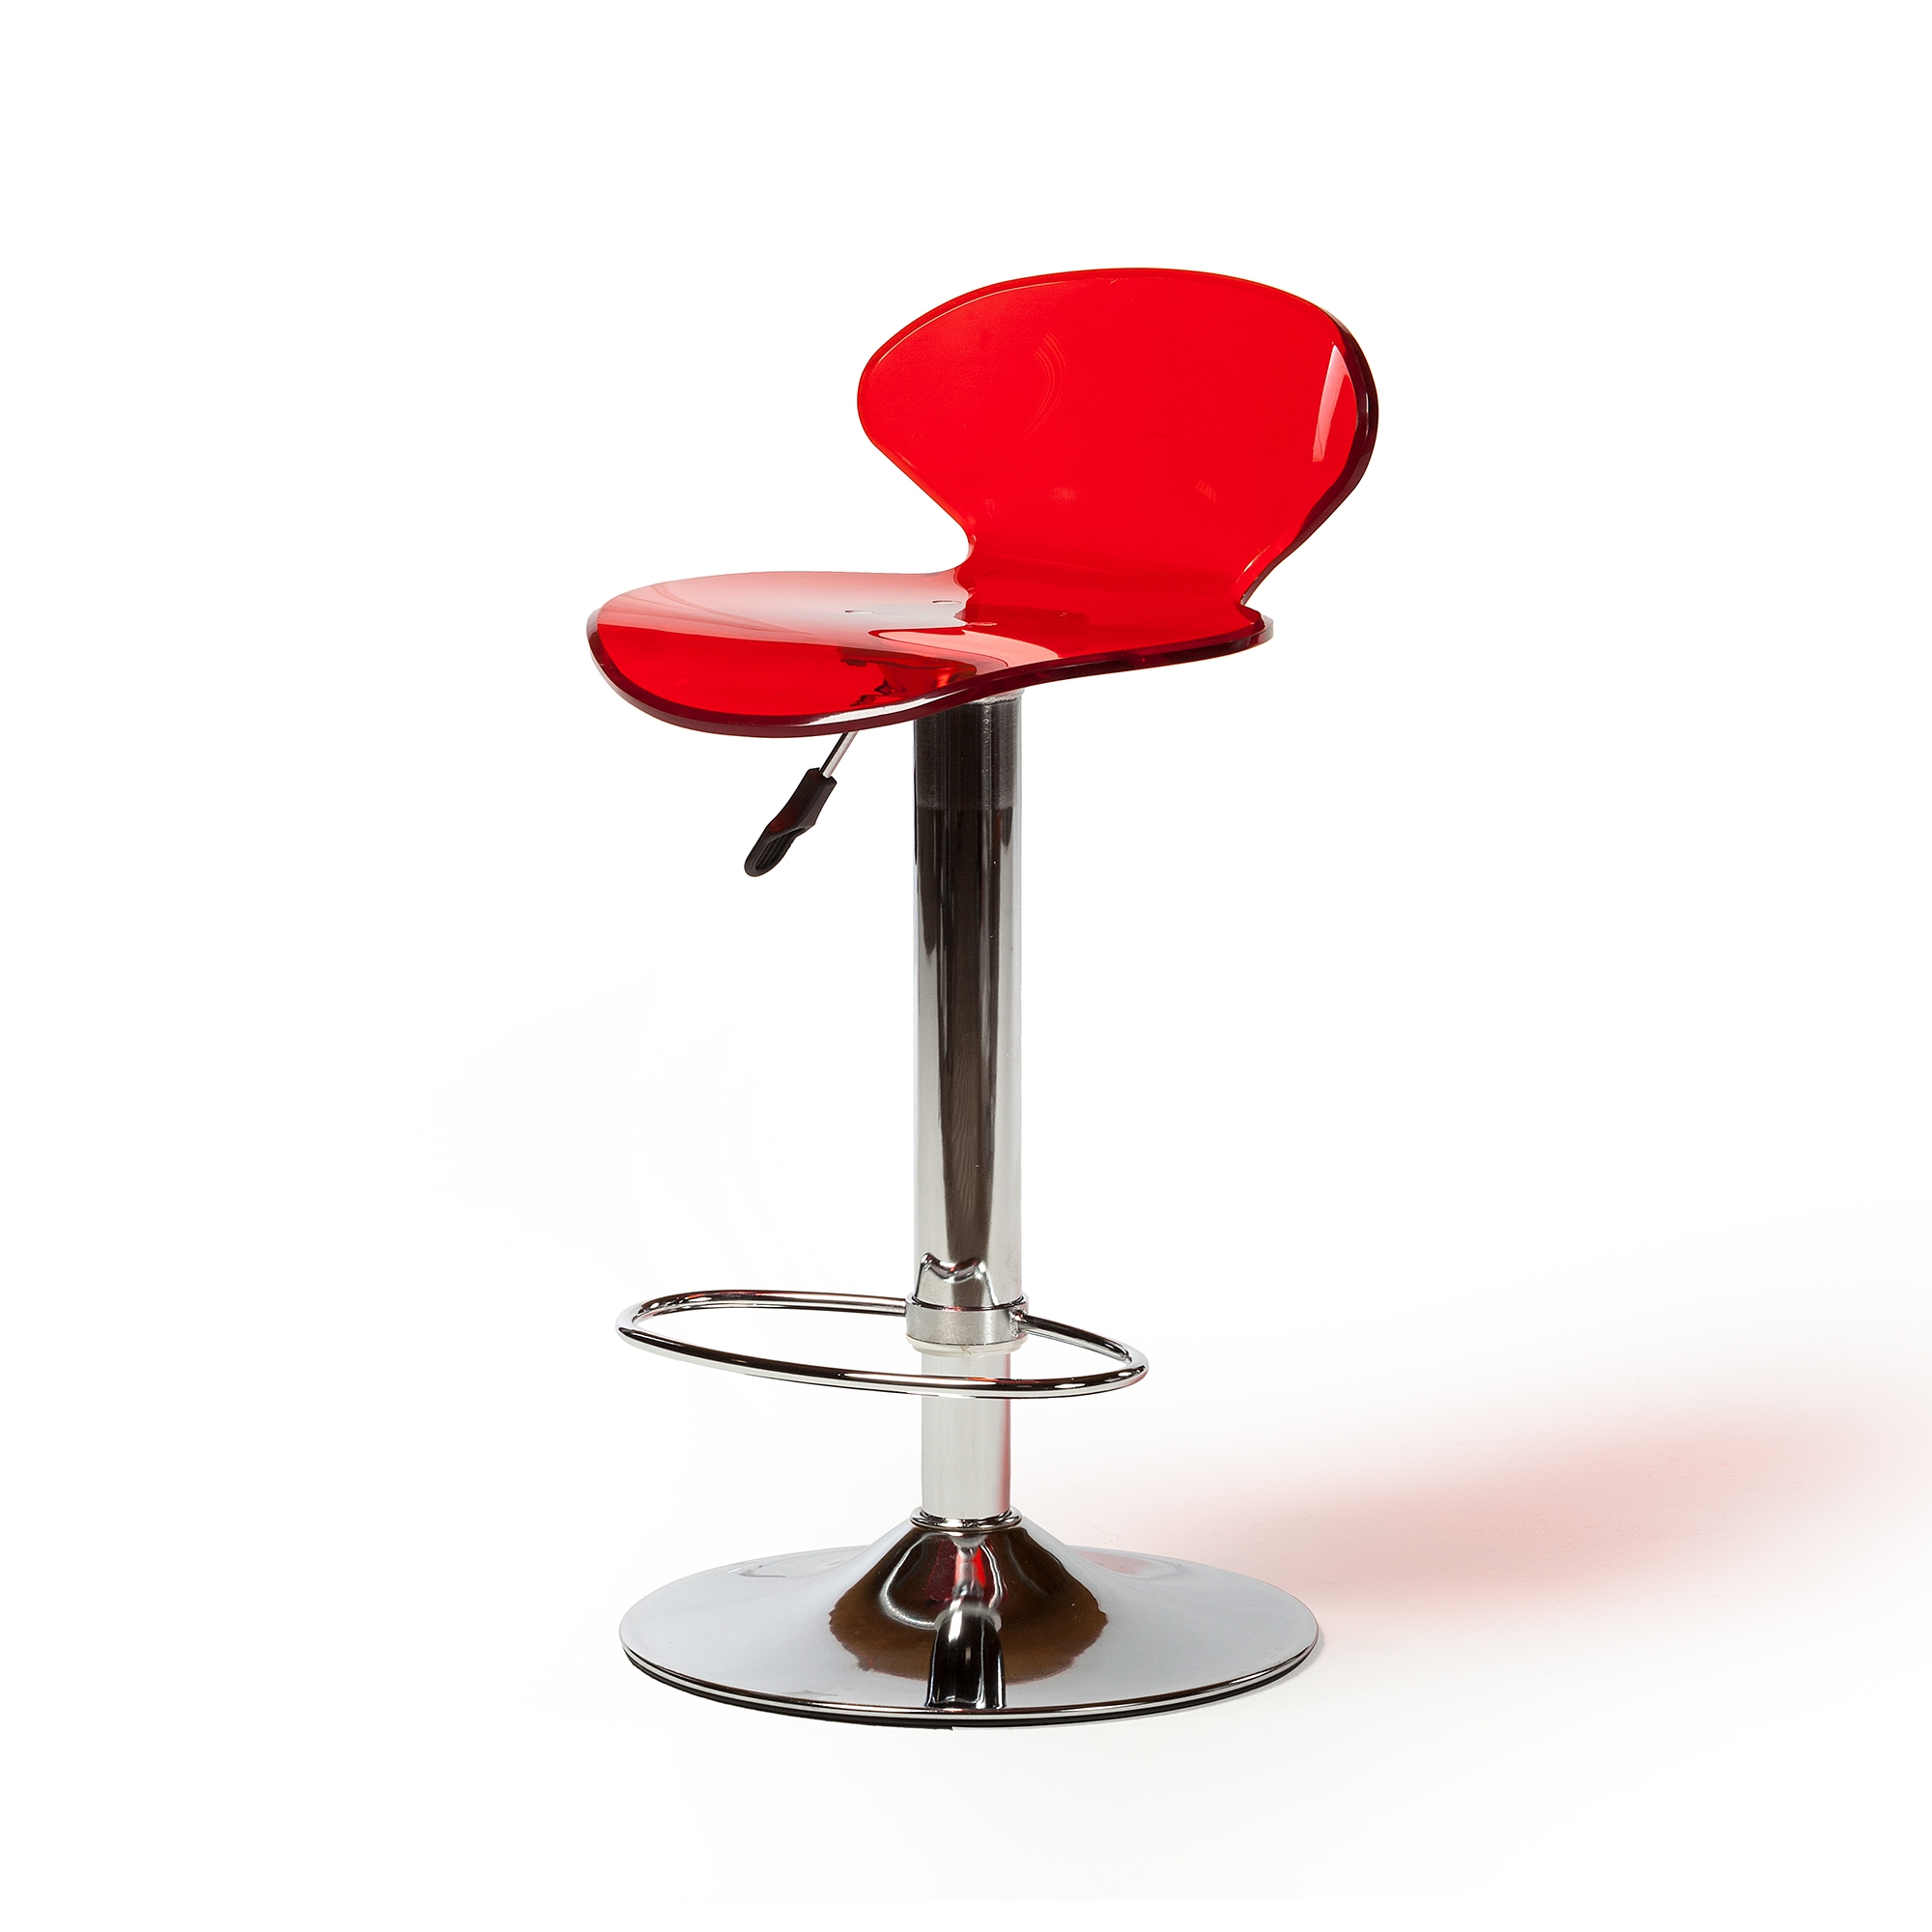 Red Lucite Seat Adjustable Swivel Bar Stool